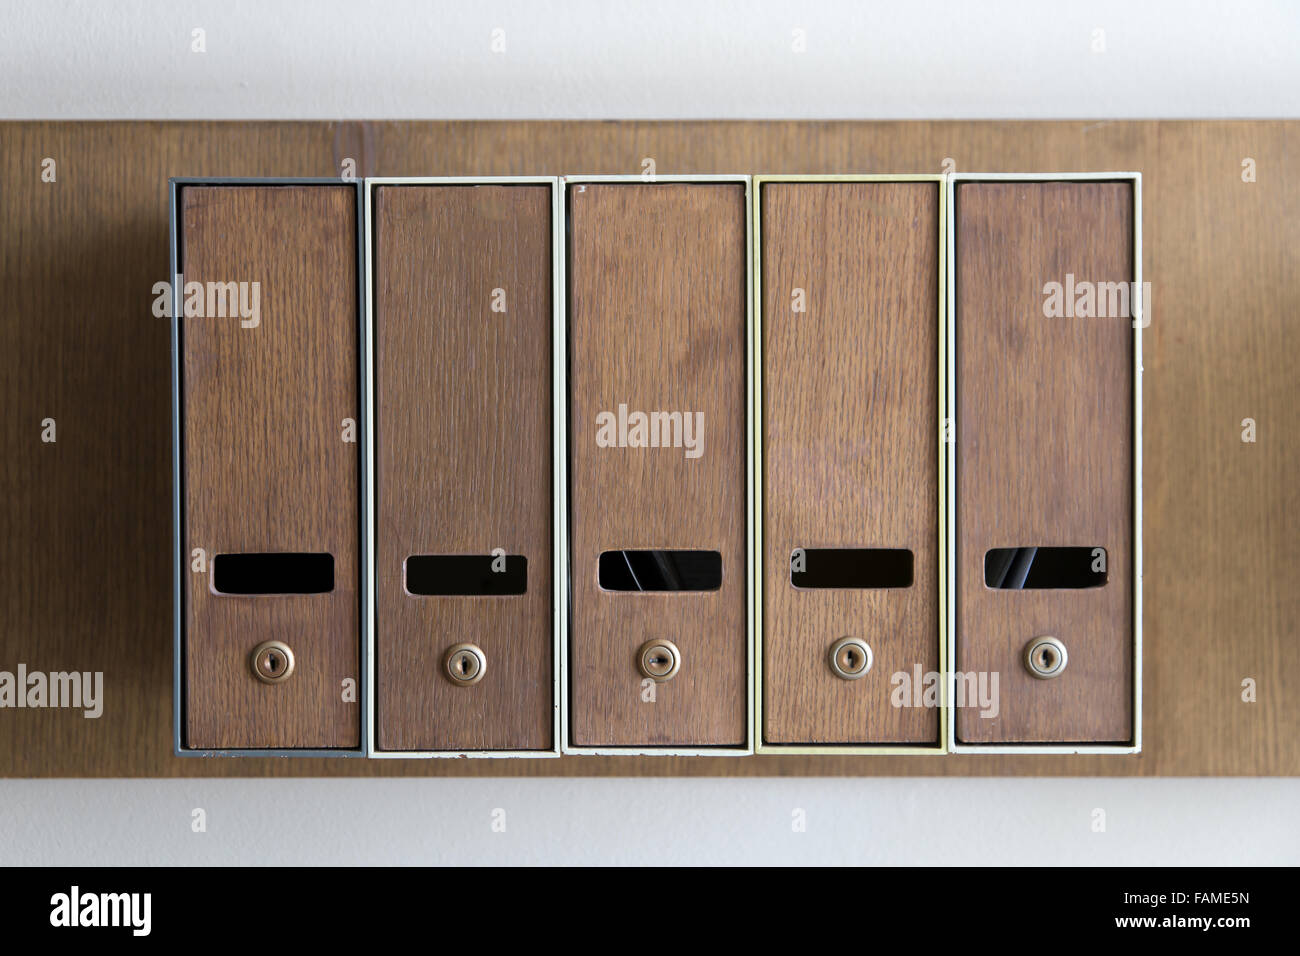 Five mailboxes are attached in the same group on the wall - Stock Image